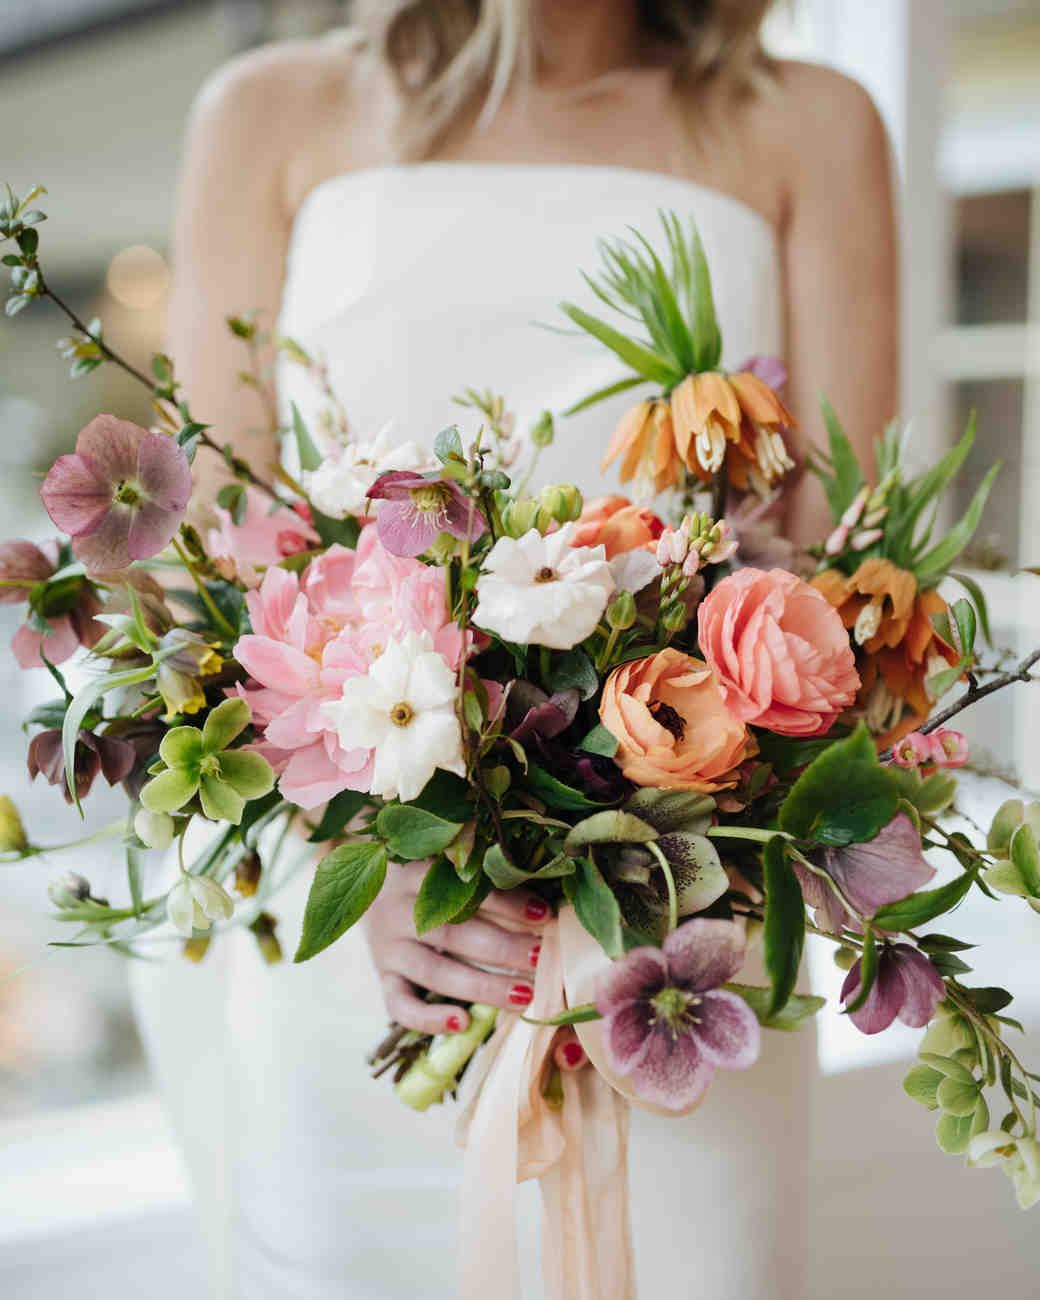 52 Ideas For Your Spring Wedding Bouquet Spring Wedding Bouquets